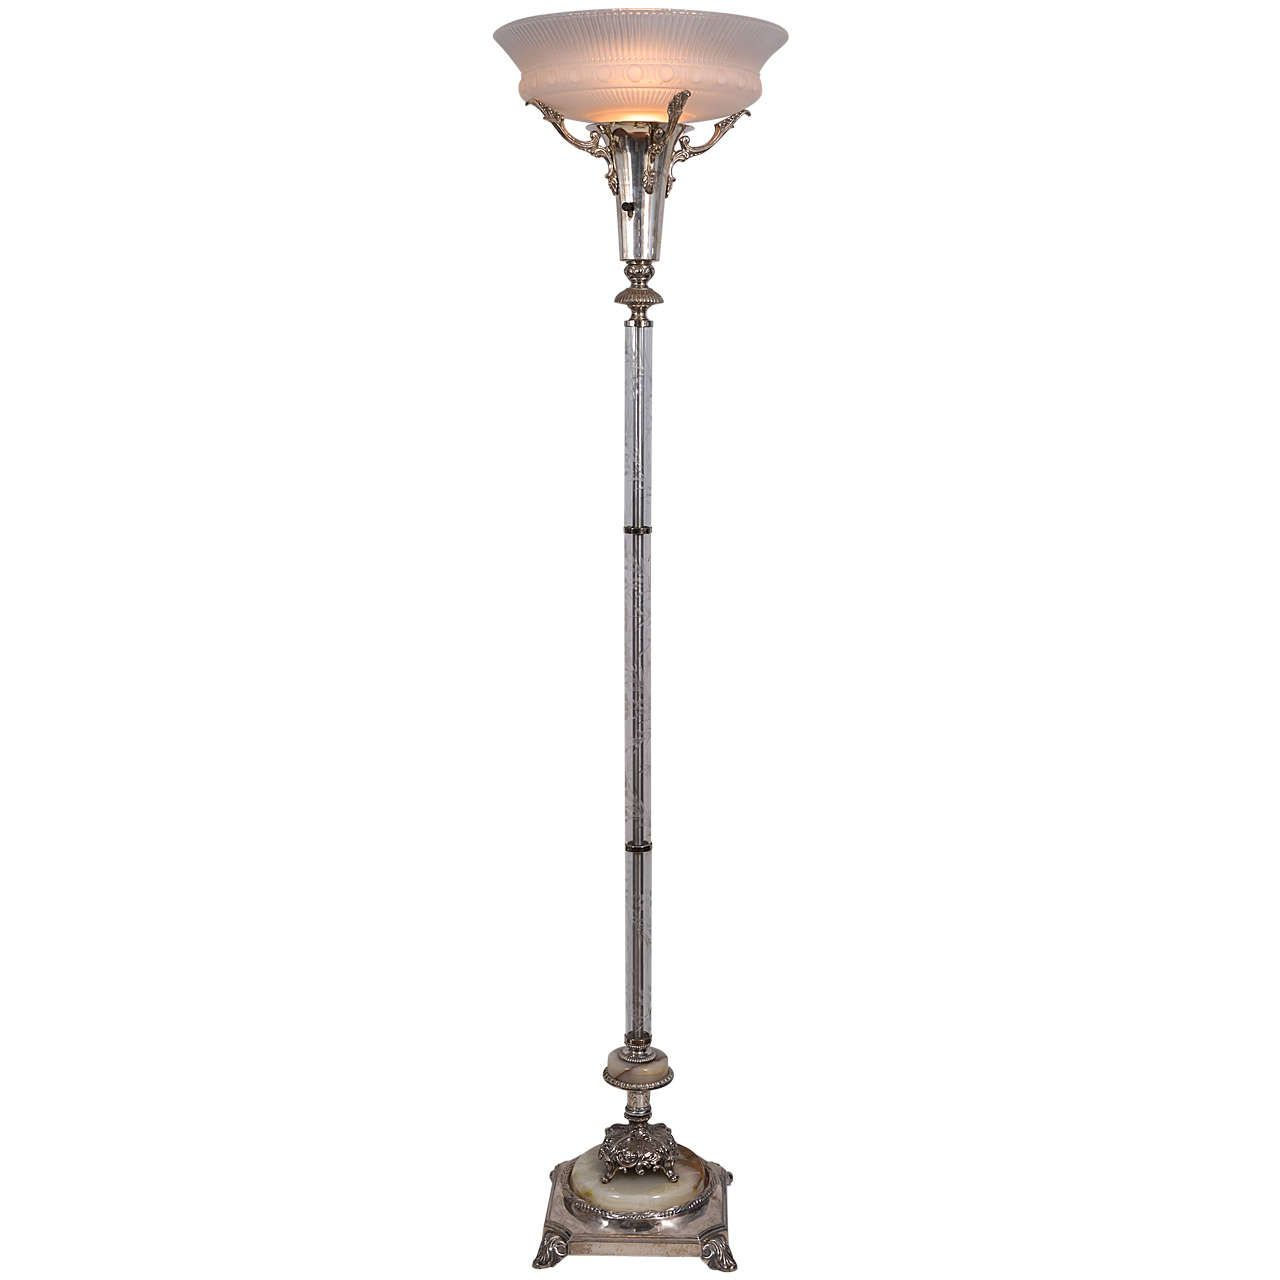 Silver Plated Torchiere Floor Lamp 1stdibs Com Torchiere Floor Lamp Floor Lamp Beautiful Floor Lamps